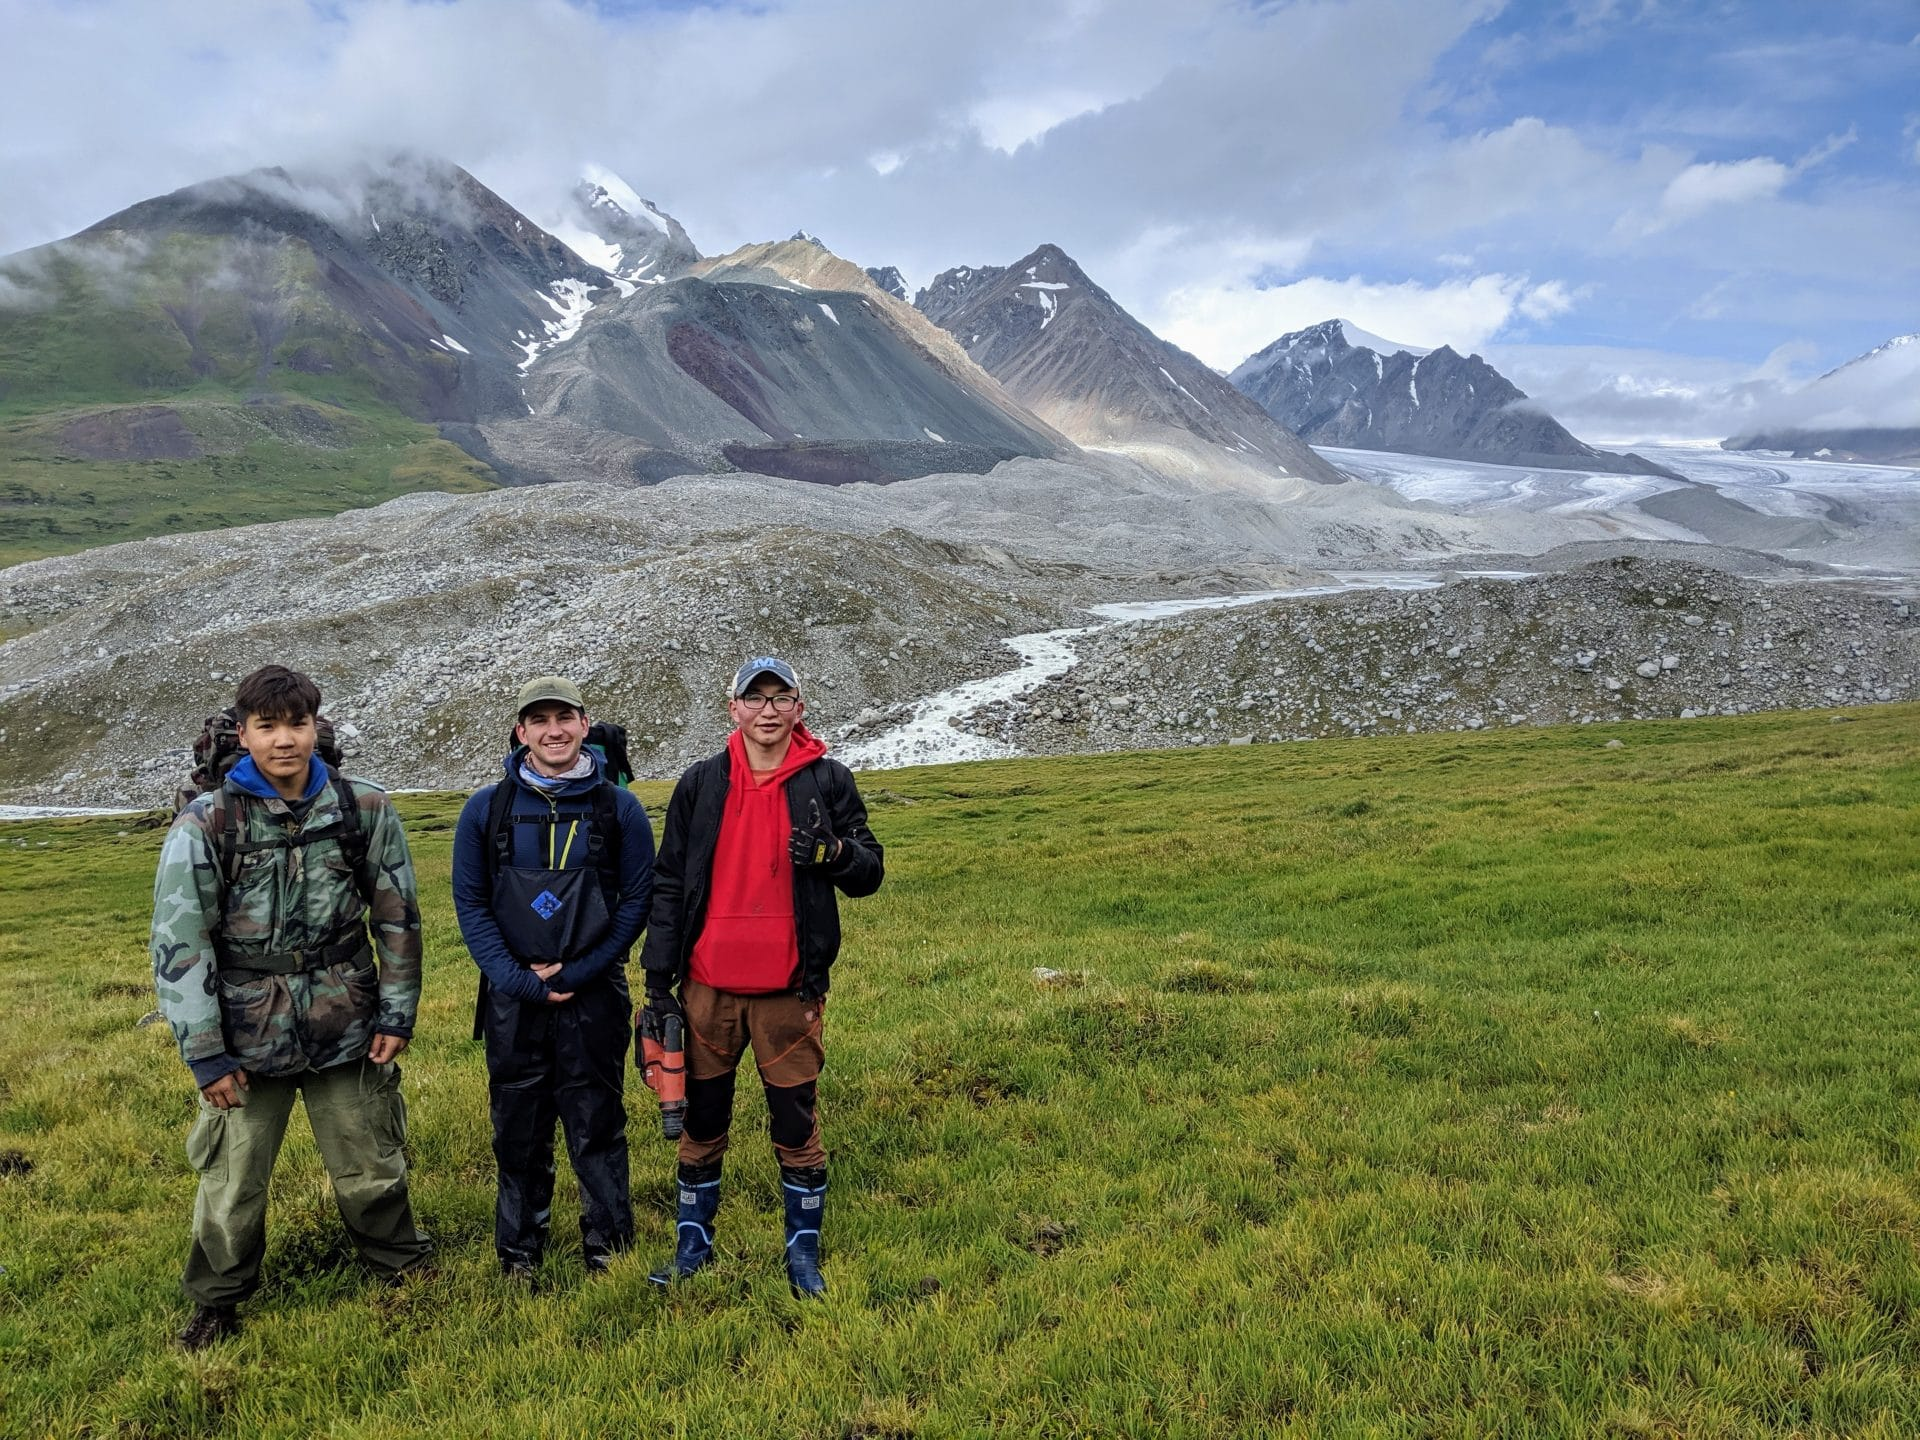 Team members Tumur Batbold, Peter Strand, and Oraza Seribol stand at the verdant edge of the Potanin glacier valley. The hills of tumbling rocks reveal young moraines.